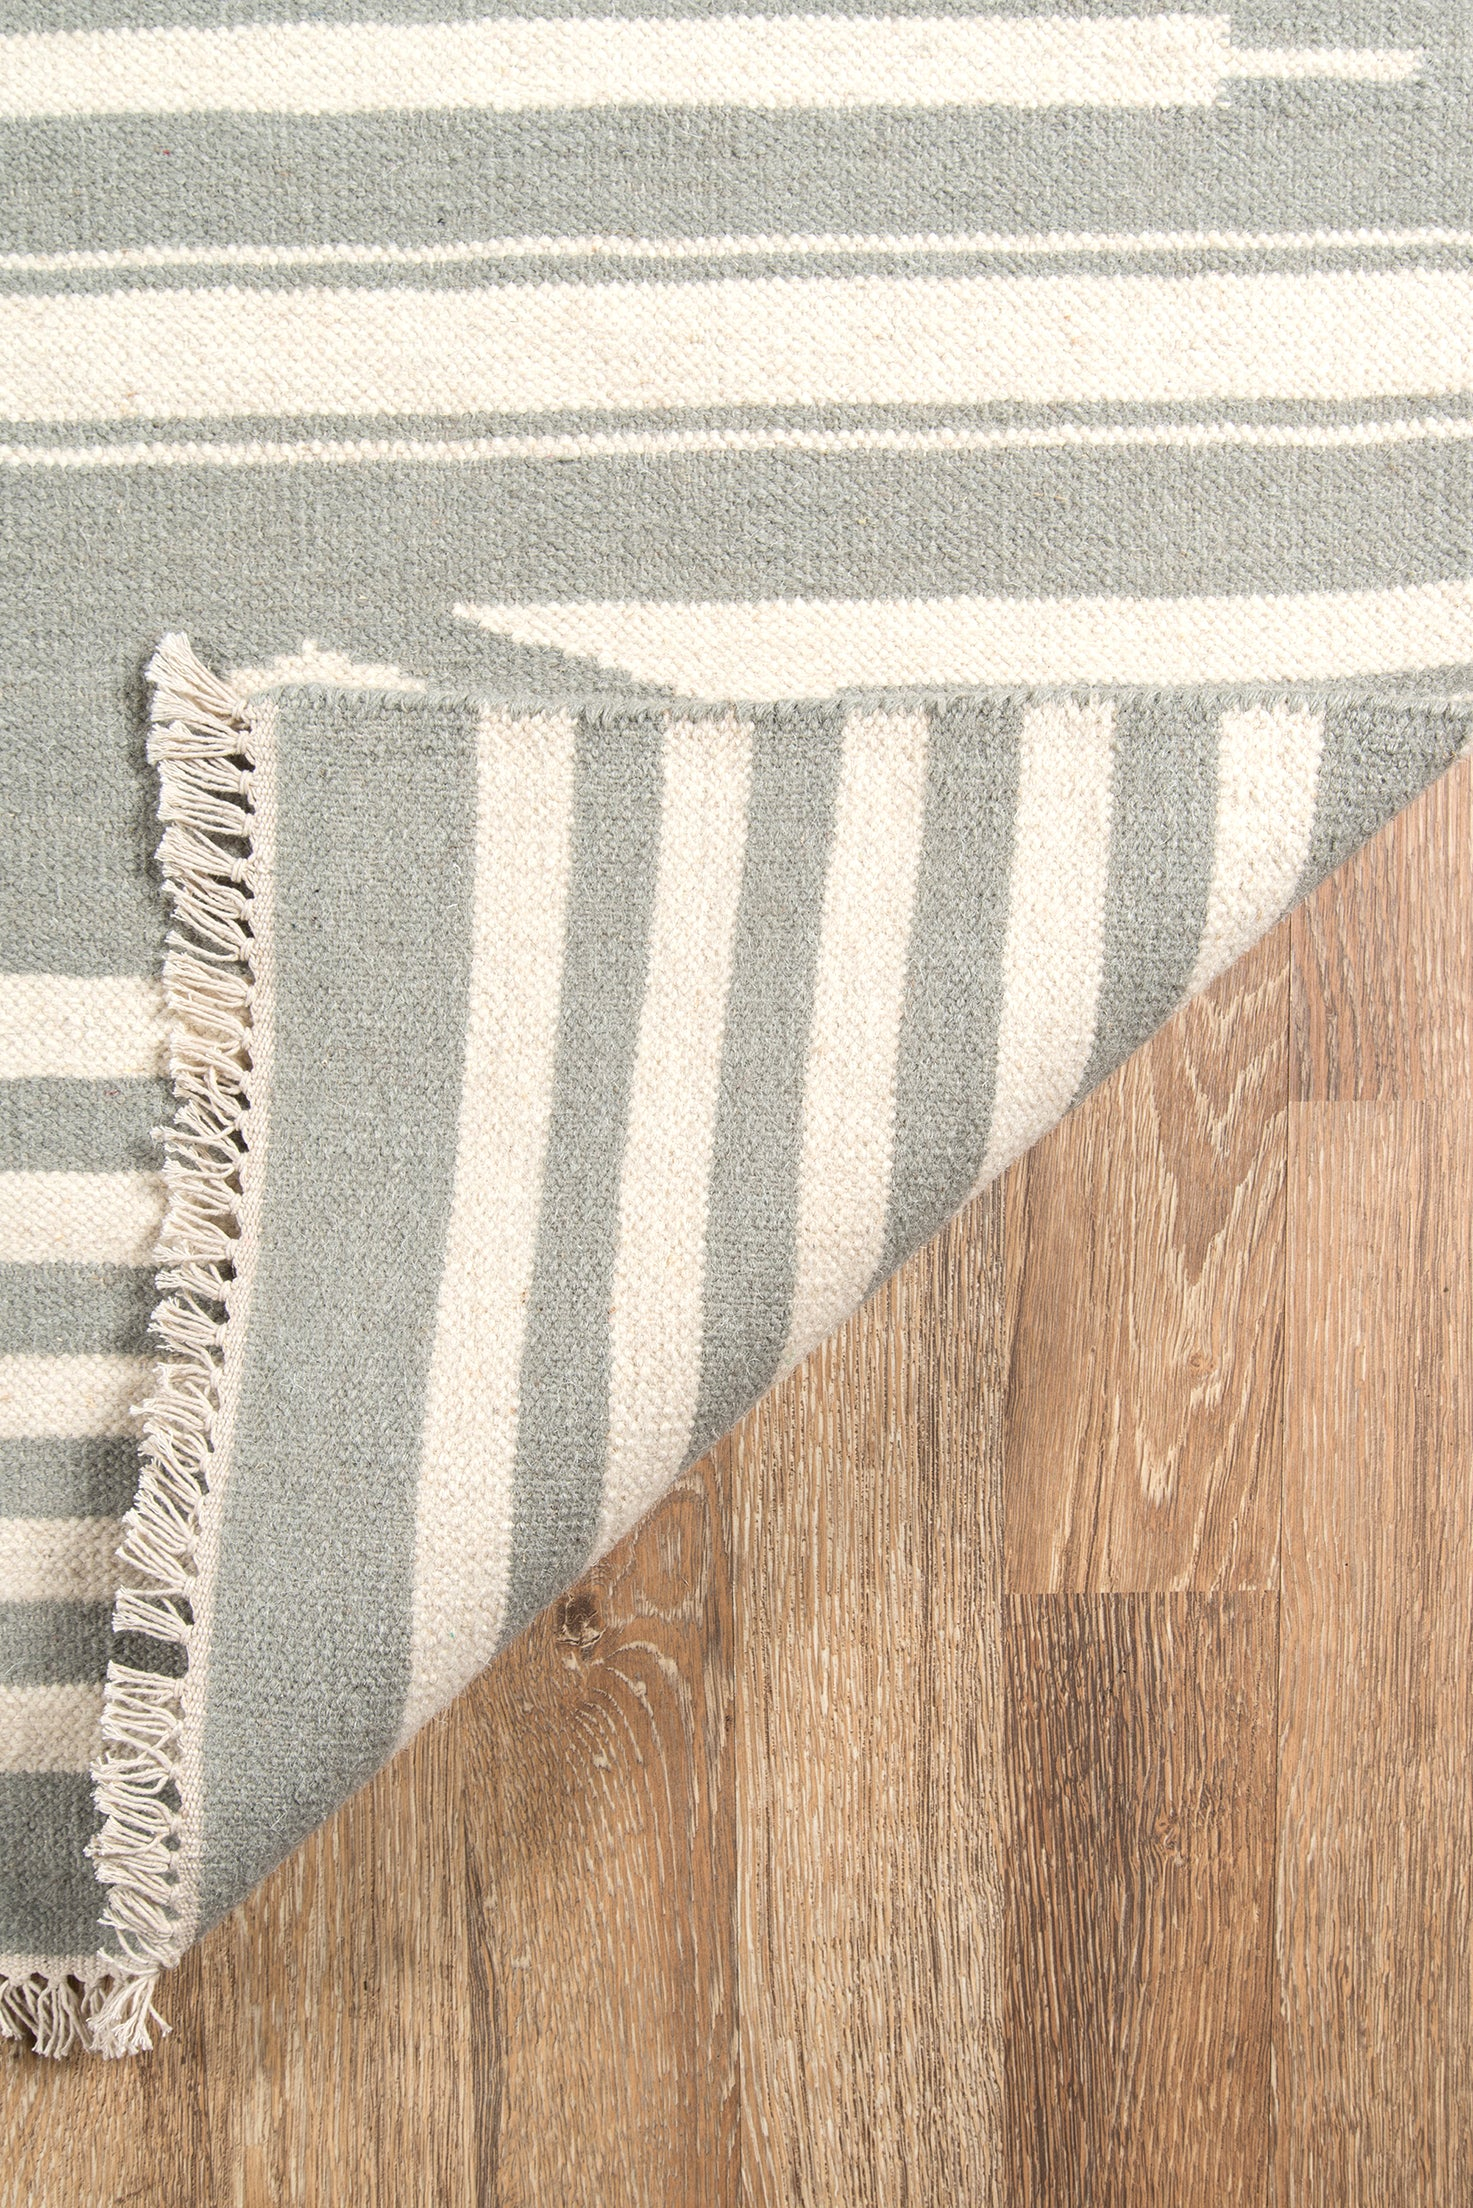 Gray and White Striped Southwest Flatweave Rug - Erin Gates - Thompson